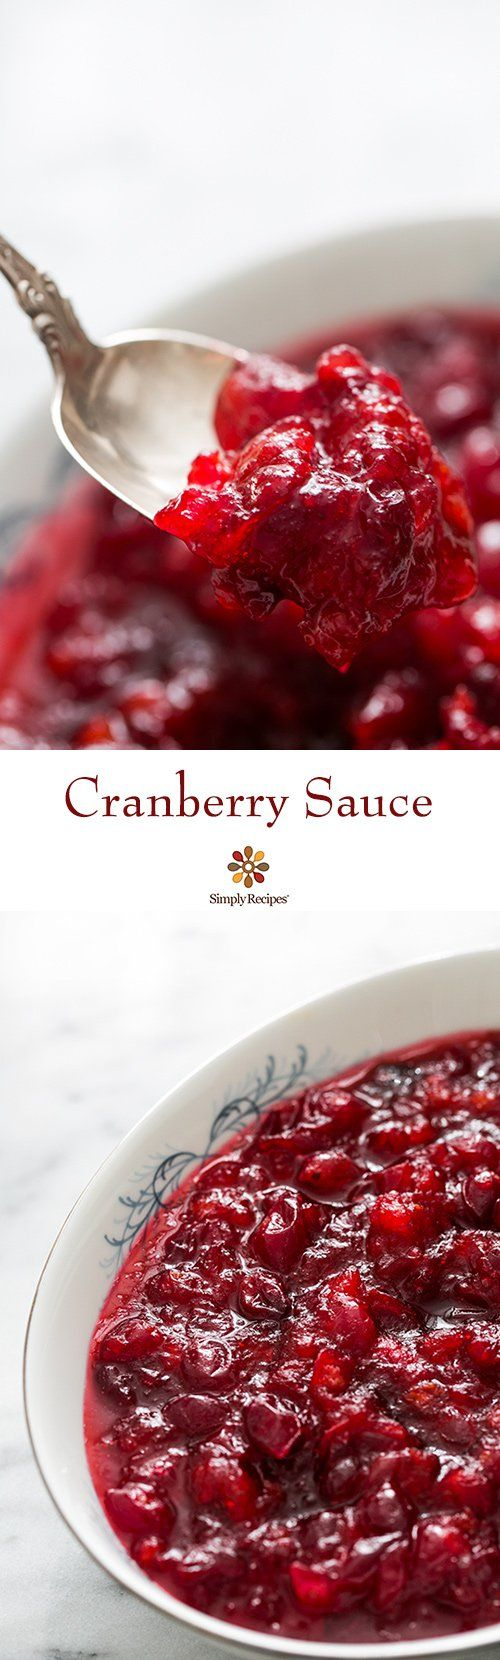 Cranberry Sauce by simplyrecipes: Classic, easy and delicious Thanksgiving cranberry sauce from scratch.  Perfect with turkey. #Cranberry_Sauce #Easy